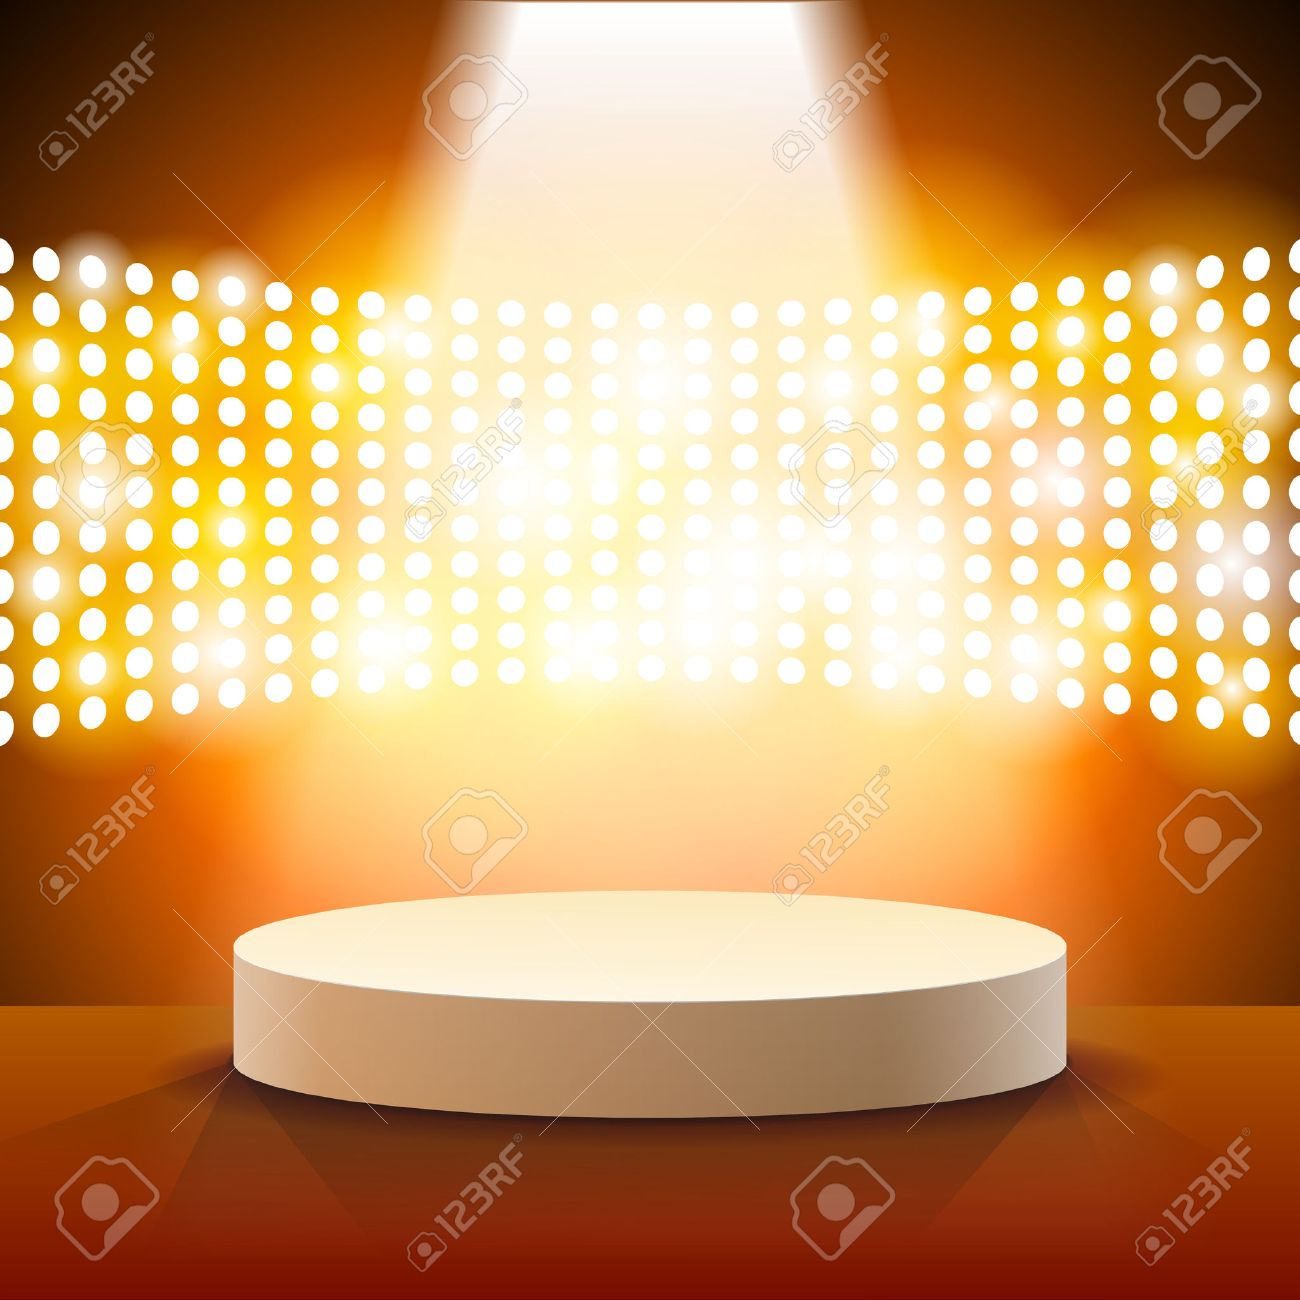 Stage Lighting Background with Spot Light Effects - vector illustration Stock Vector - 36070566 & Stage Lighting Background With Spot Light Effects - Vector ...